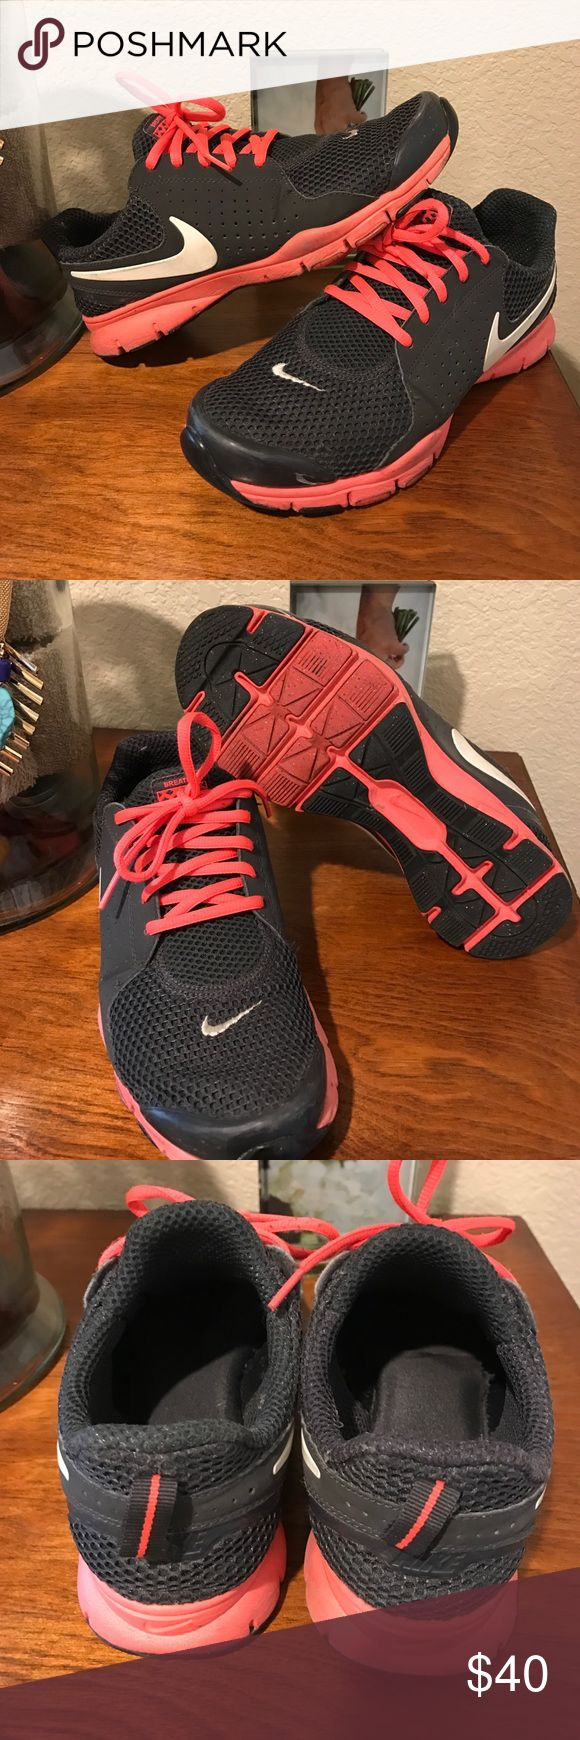 NIKE training shoes Slip On Comfortable soles. You have to get used to them being slip on, a little difficult to slip then on at first. They're 7.5 and fitting Nike Shoes Athletic Shoes